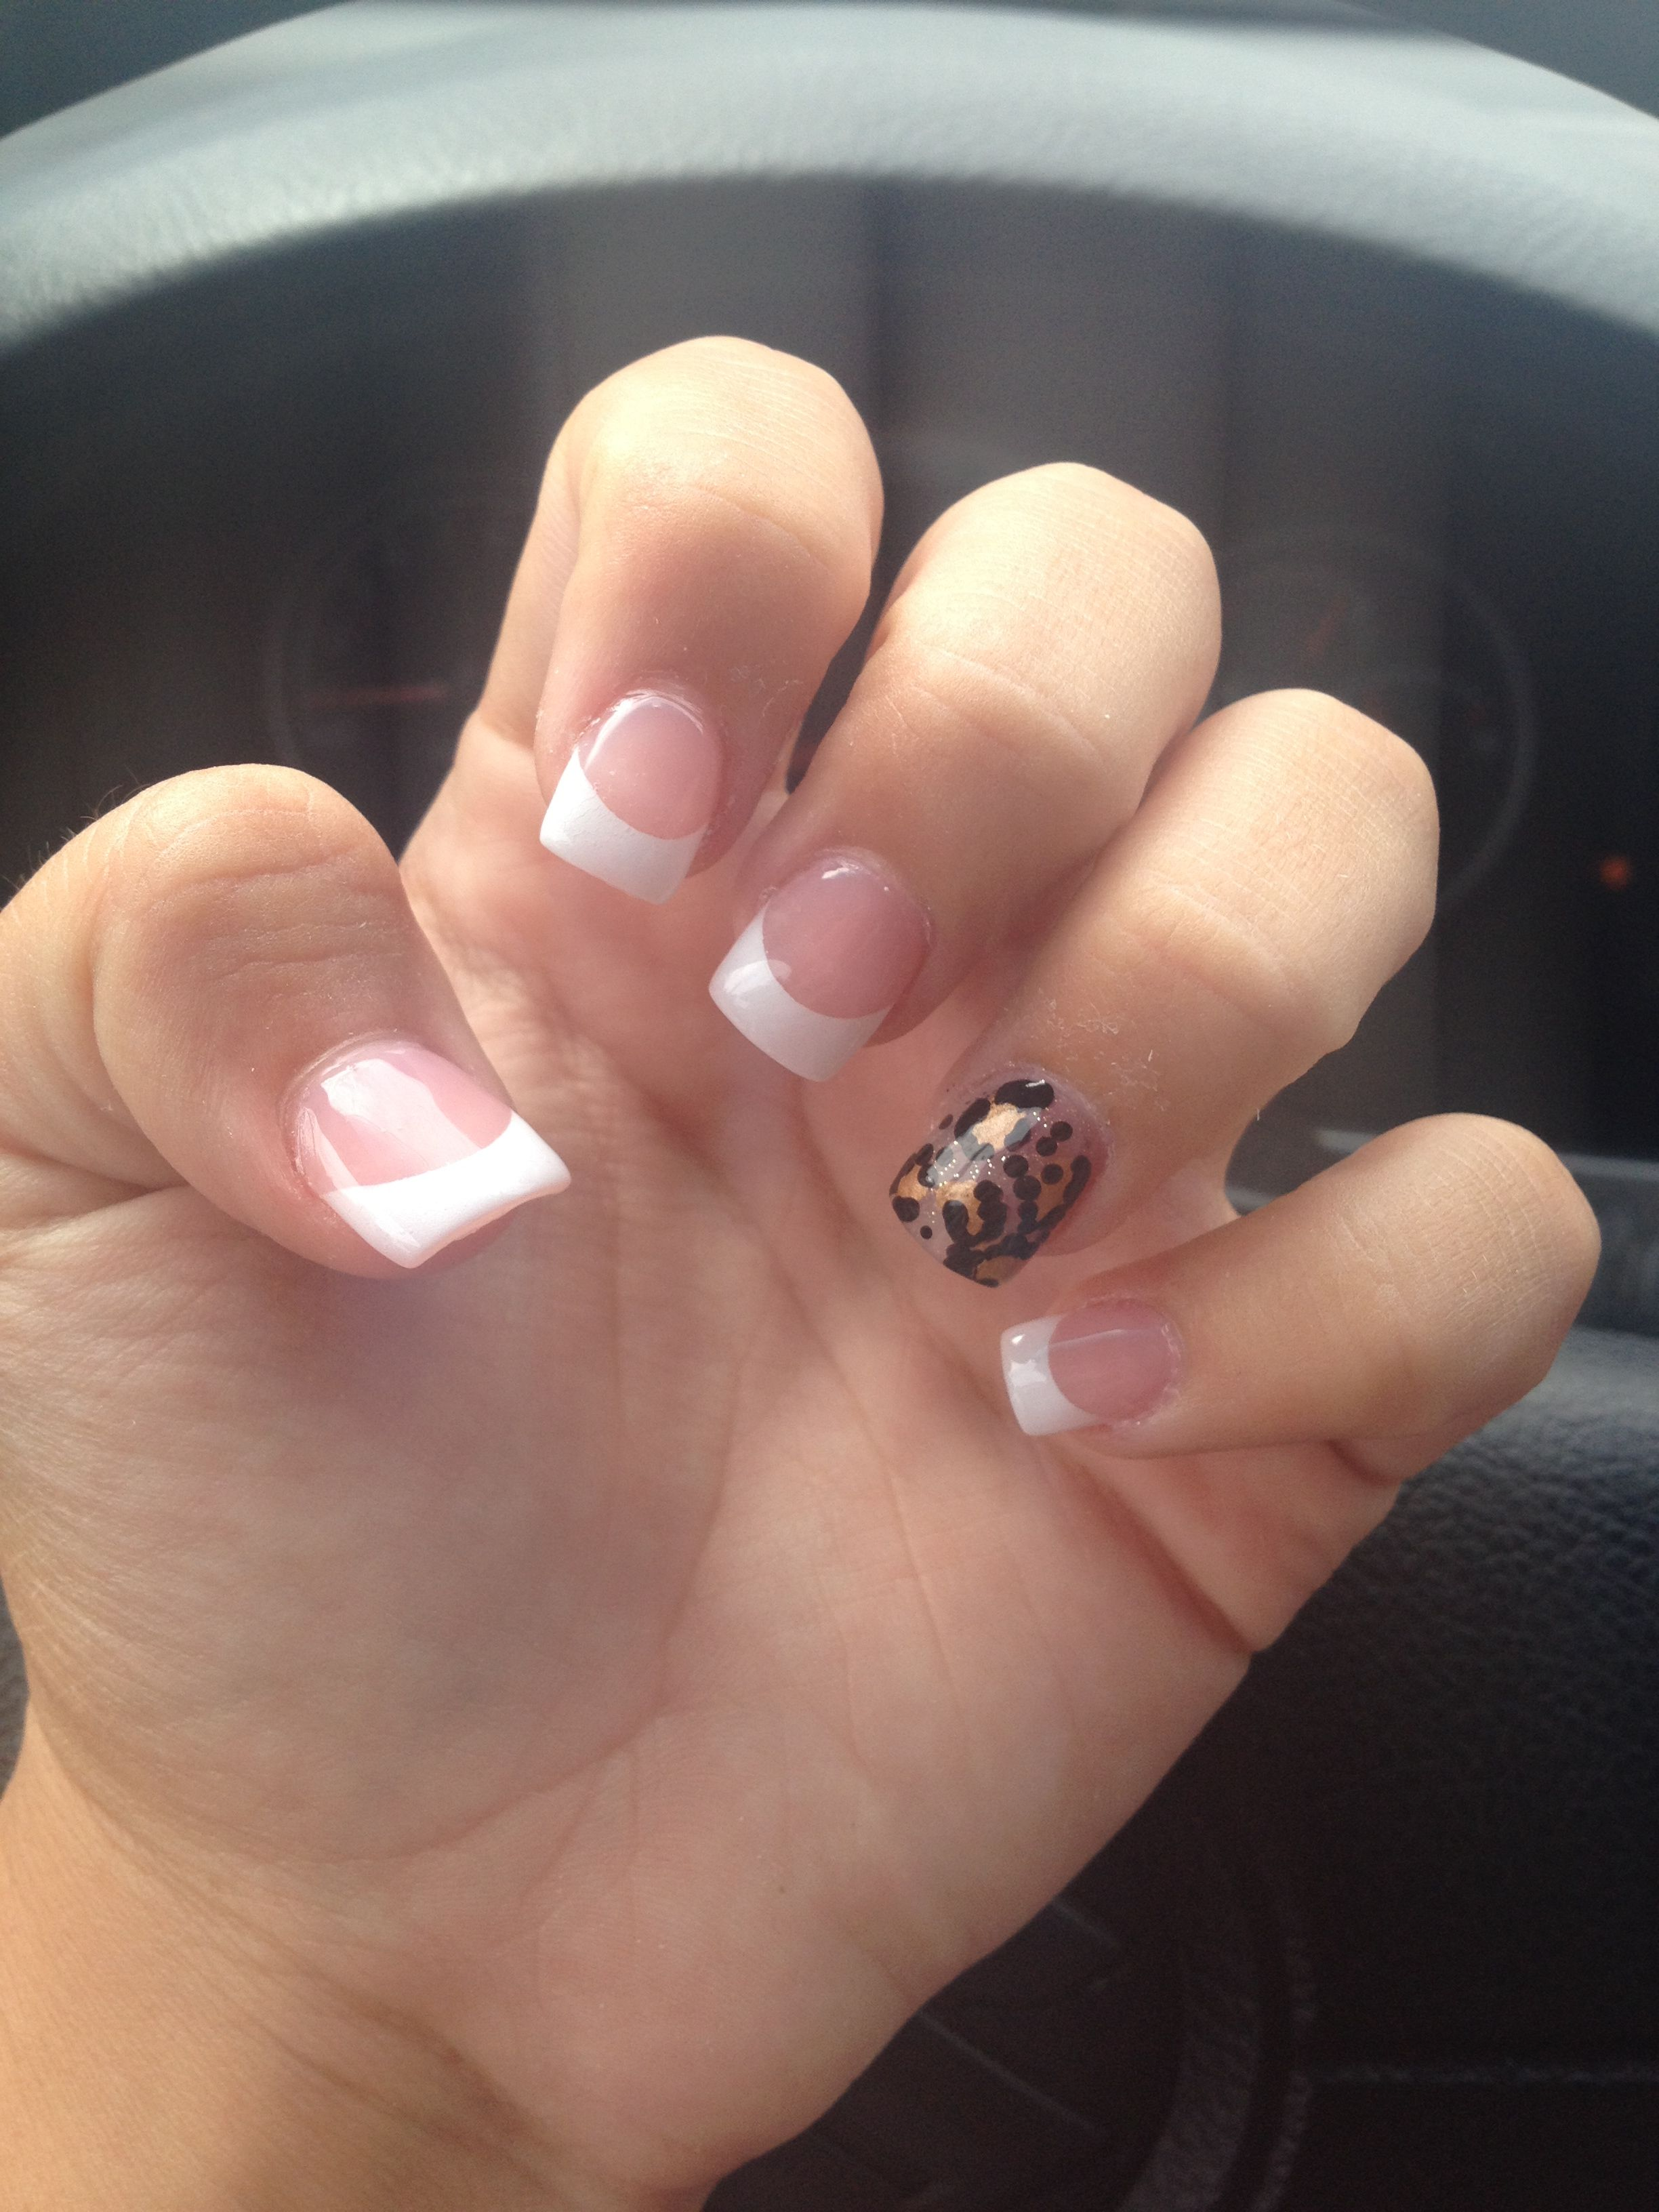 French Tips With A Cheetah Design On The Ring Finger Nails